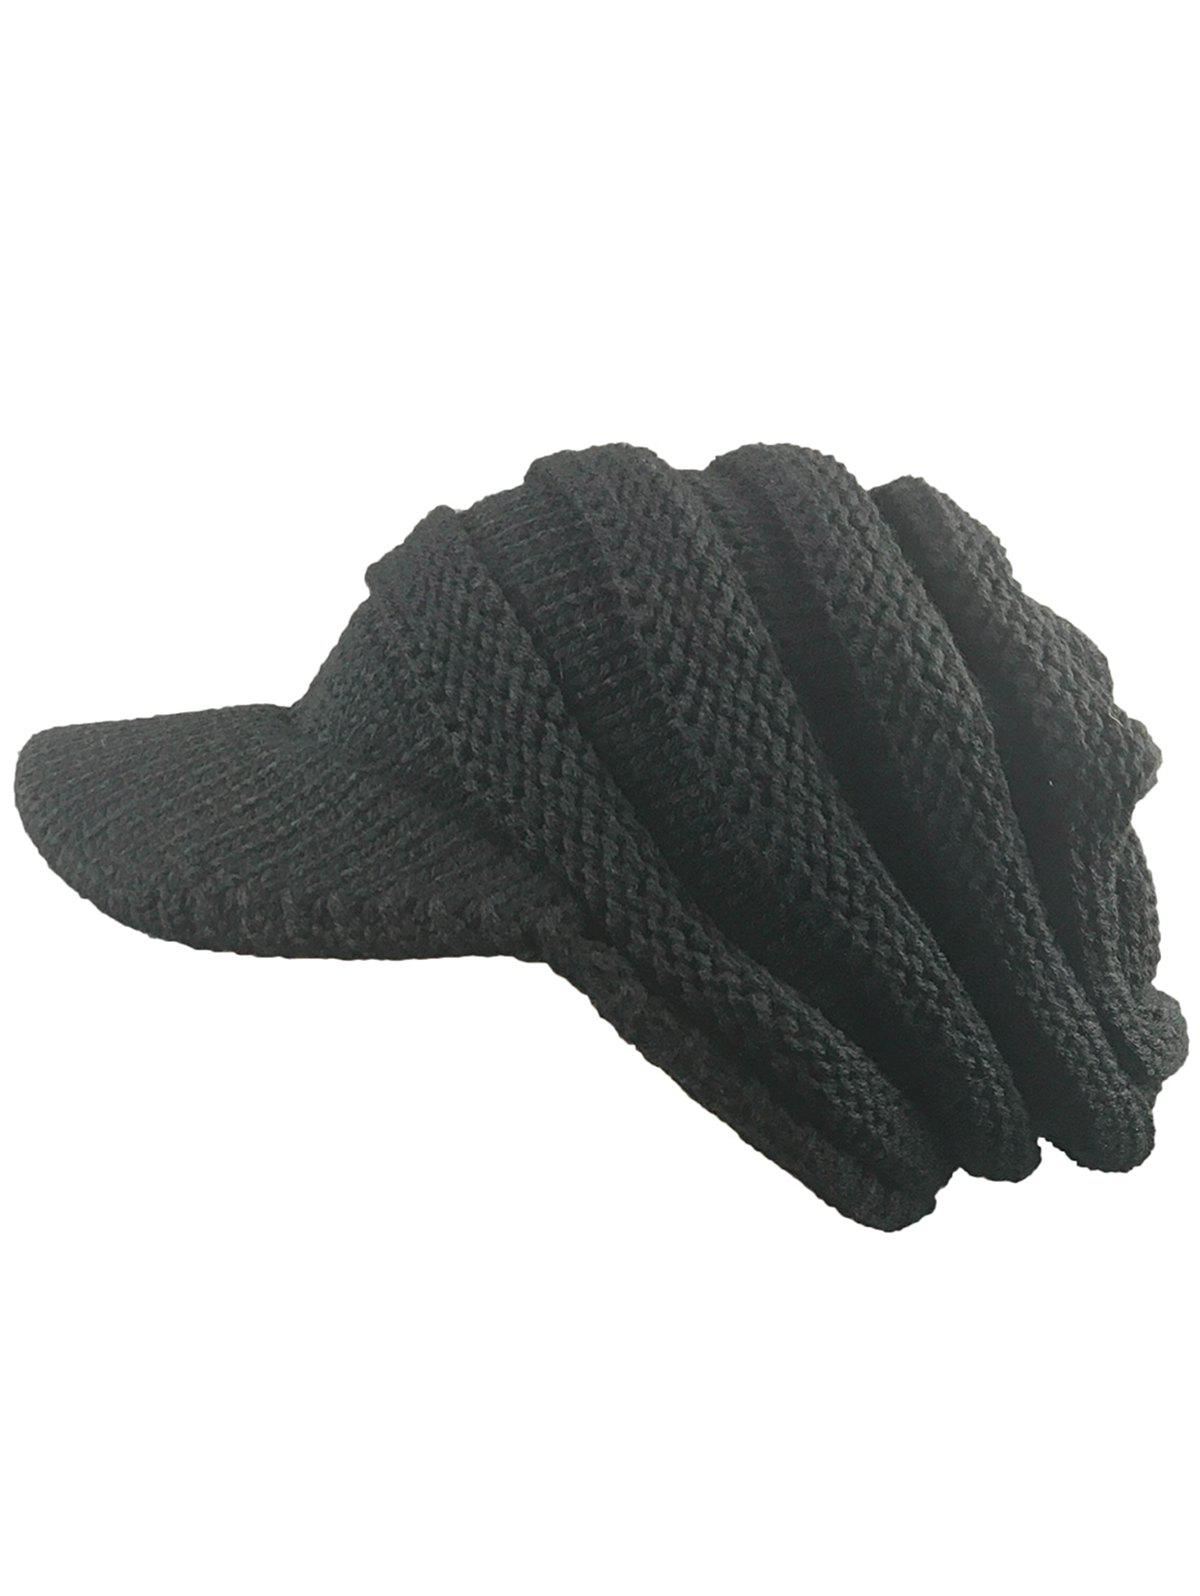 Vintage Striped Pattern Ribbed Knit Hat with BrimACCESSORIES<br><br>Color: BLACK; Hat Type: Skullies Beanie; Group: Adult; Gender: Unisex; Style: Fashion; Pattern Type: Striped; Material: Acrylic; Weight: 0.1000kg; Package Contents: 1 x Hat;